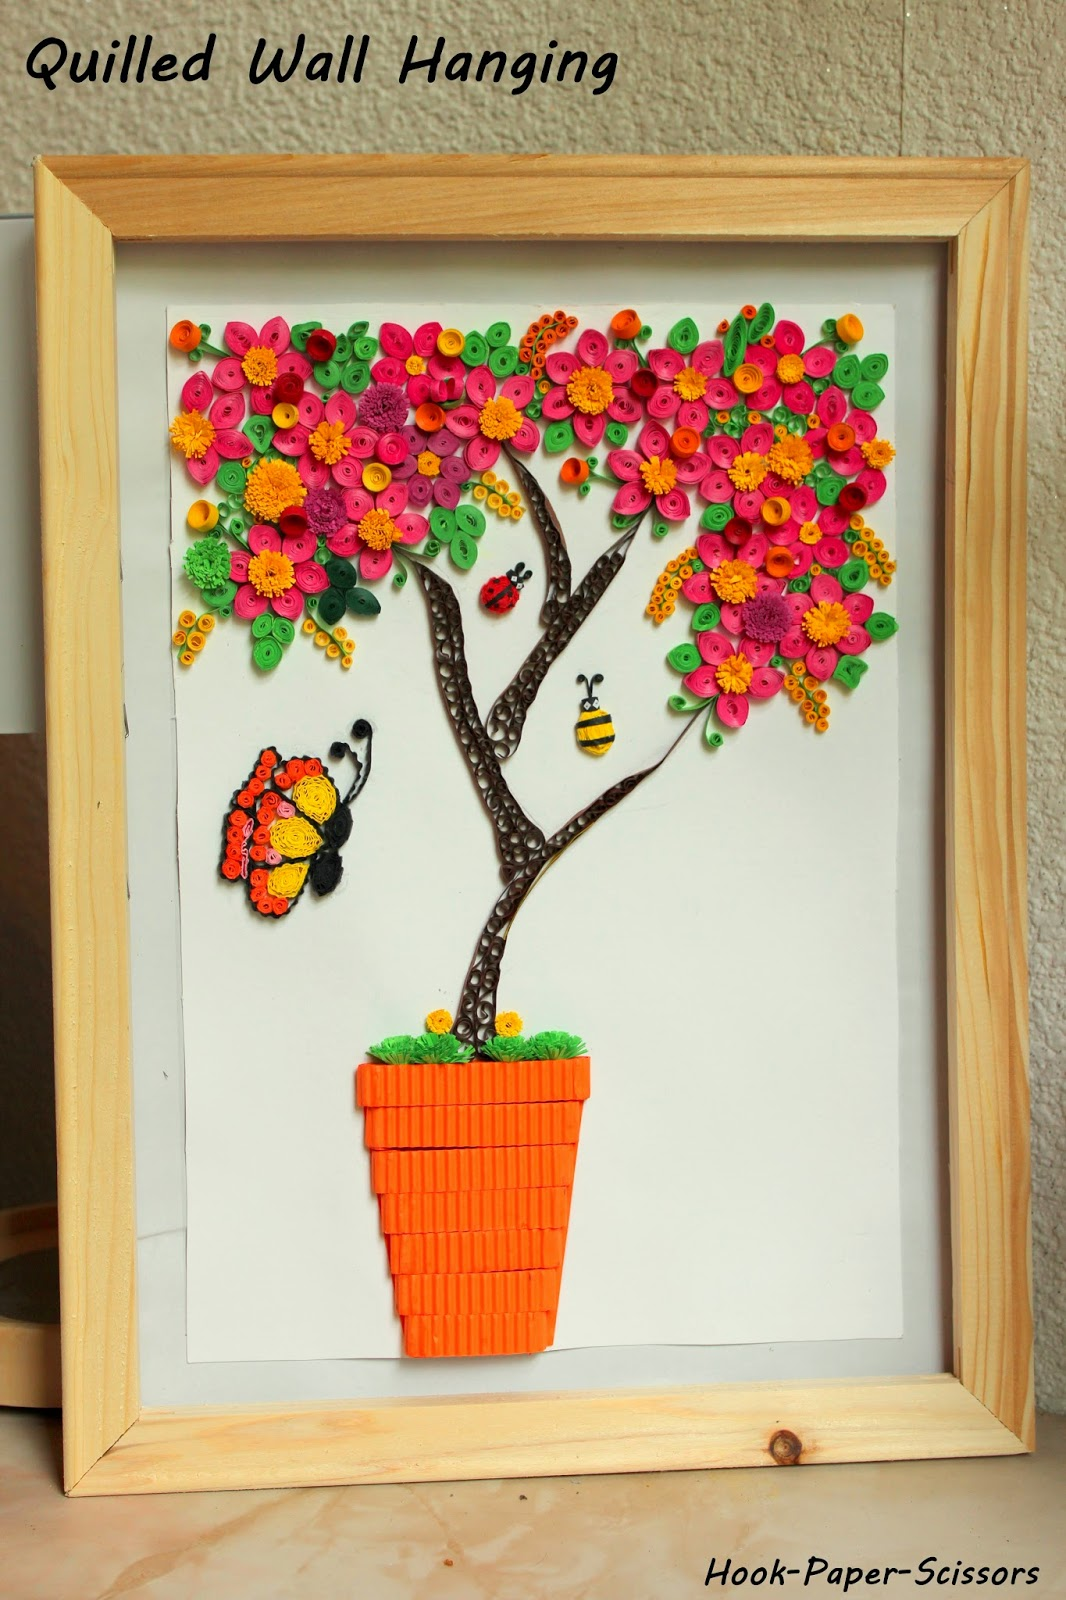 hook paper scissors quilled wall hanging